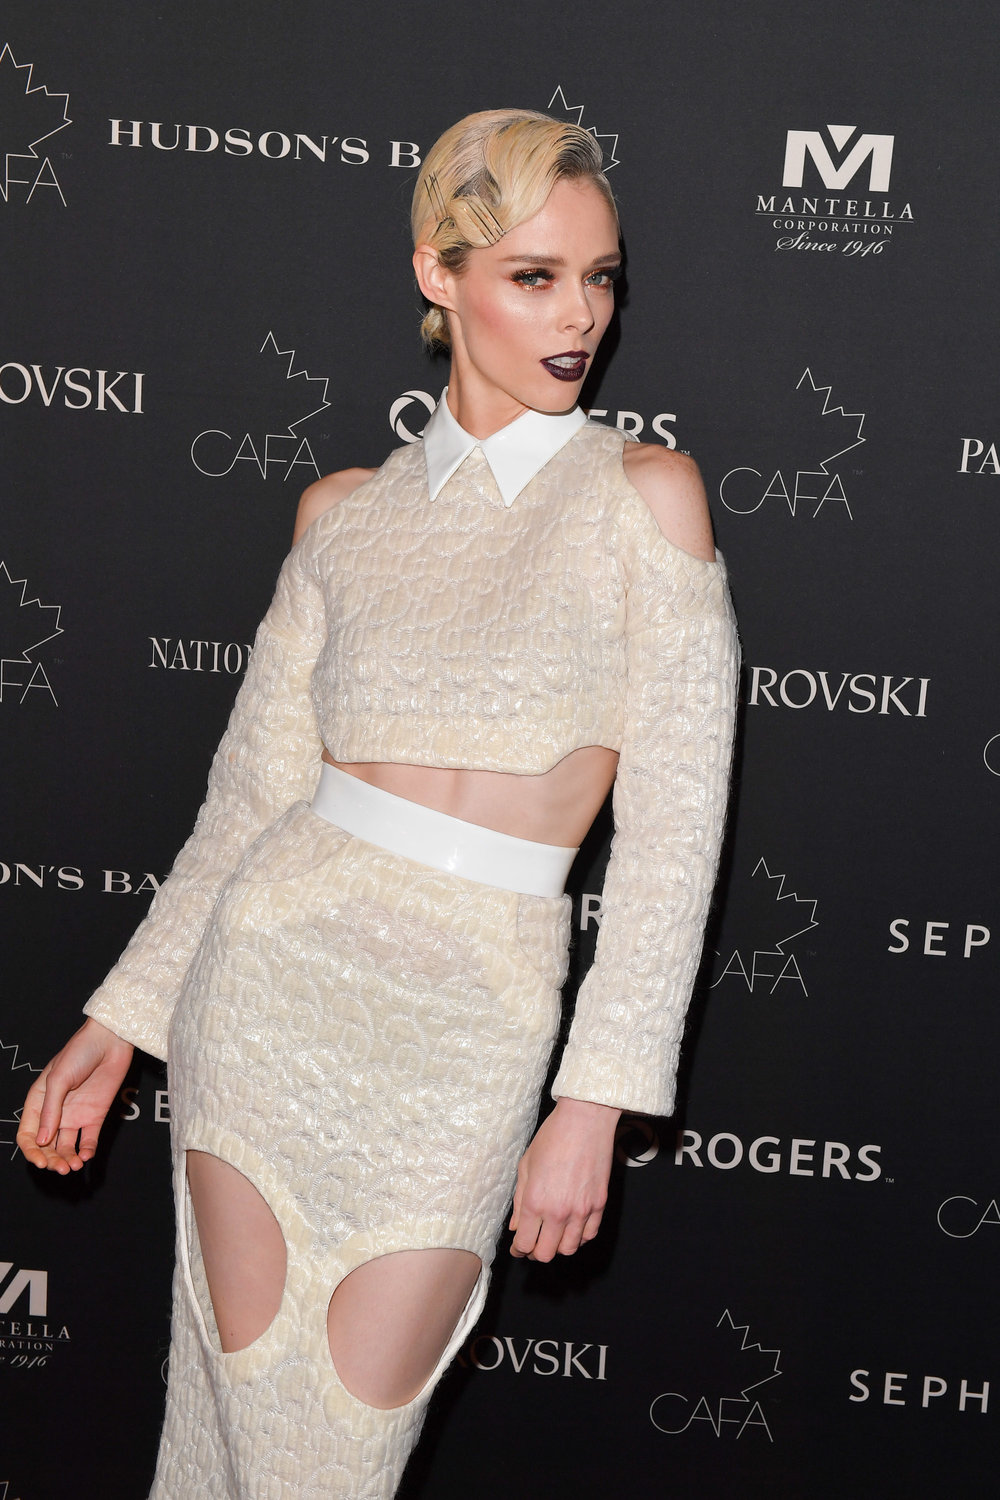 Model Coco Rocha attends the Canadian Arts and Fashion Awards at the Fairmount Royal York in Toronto